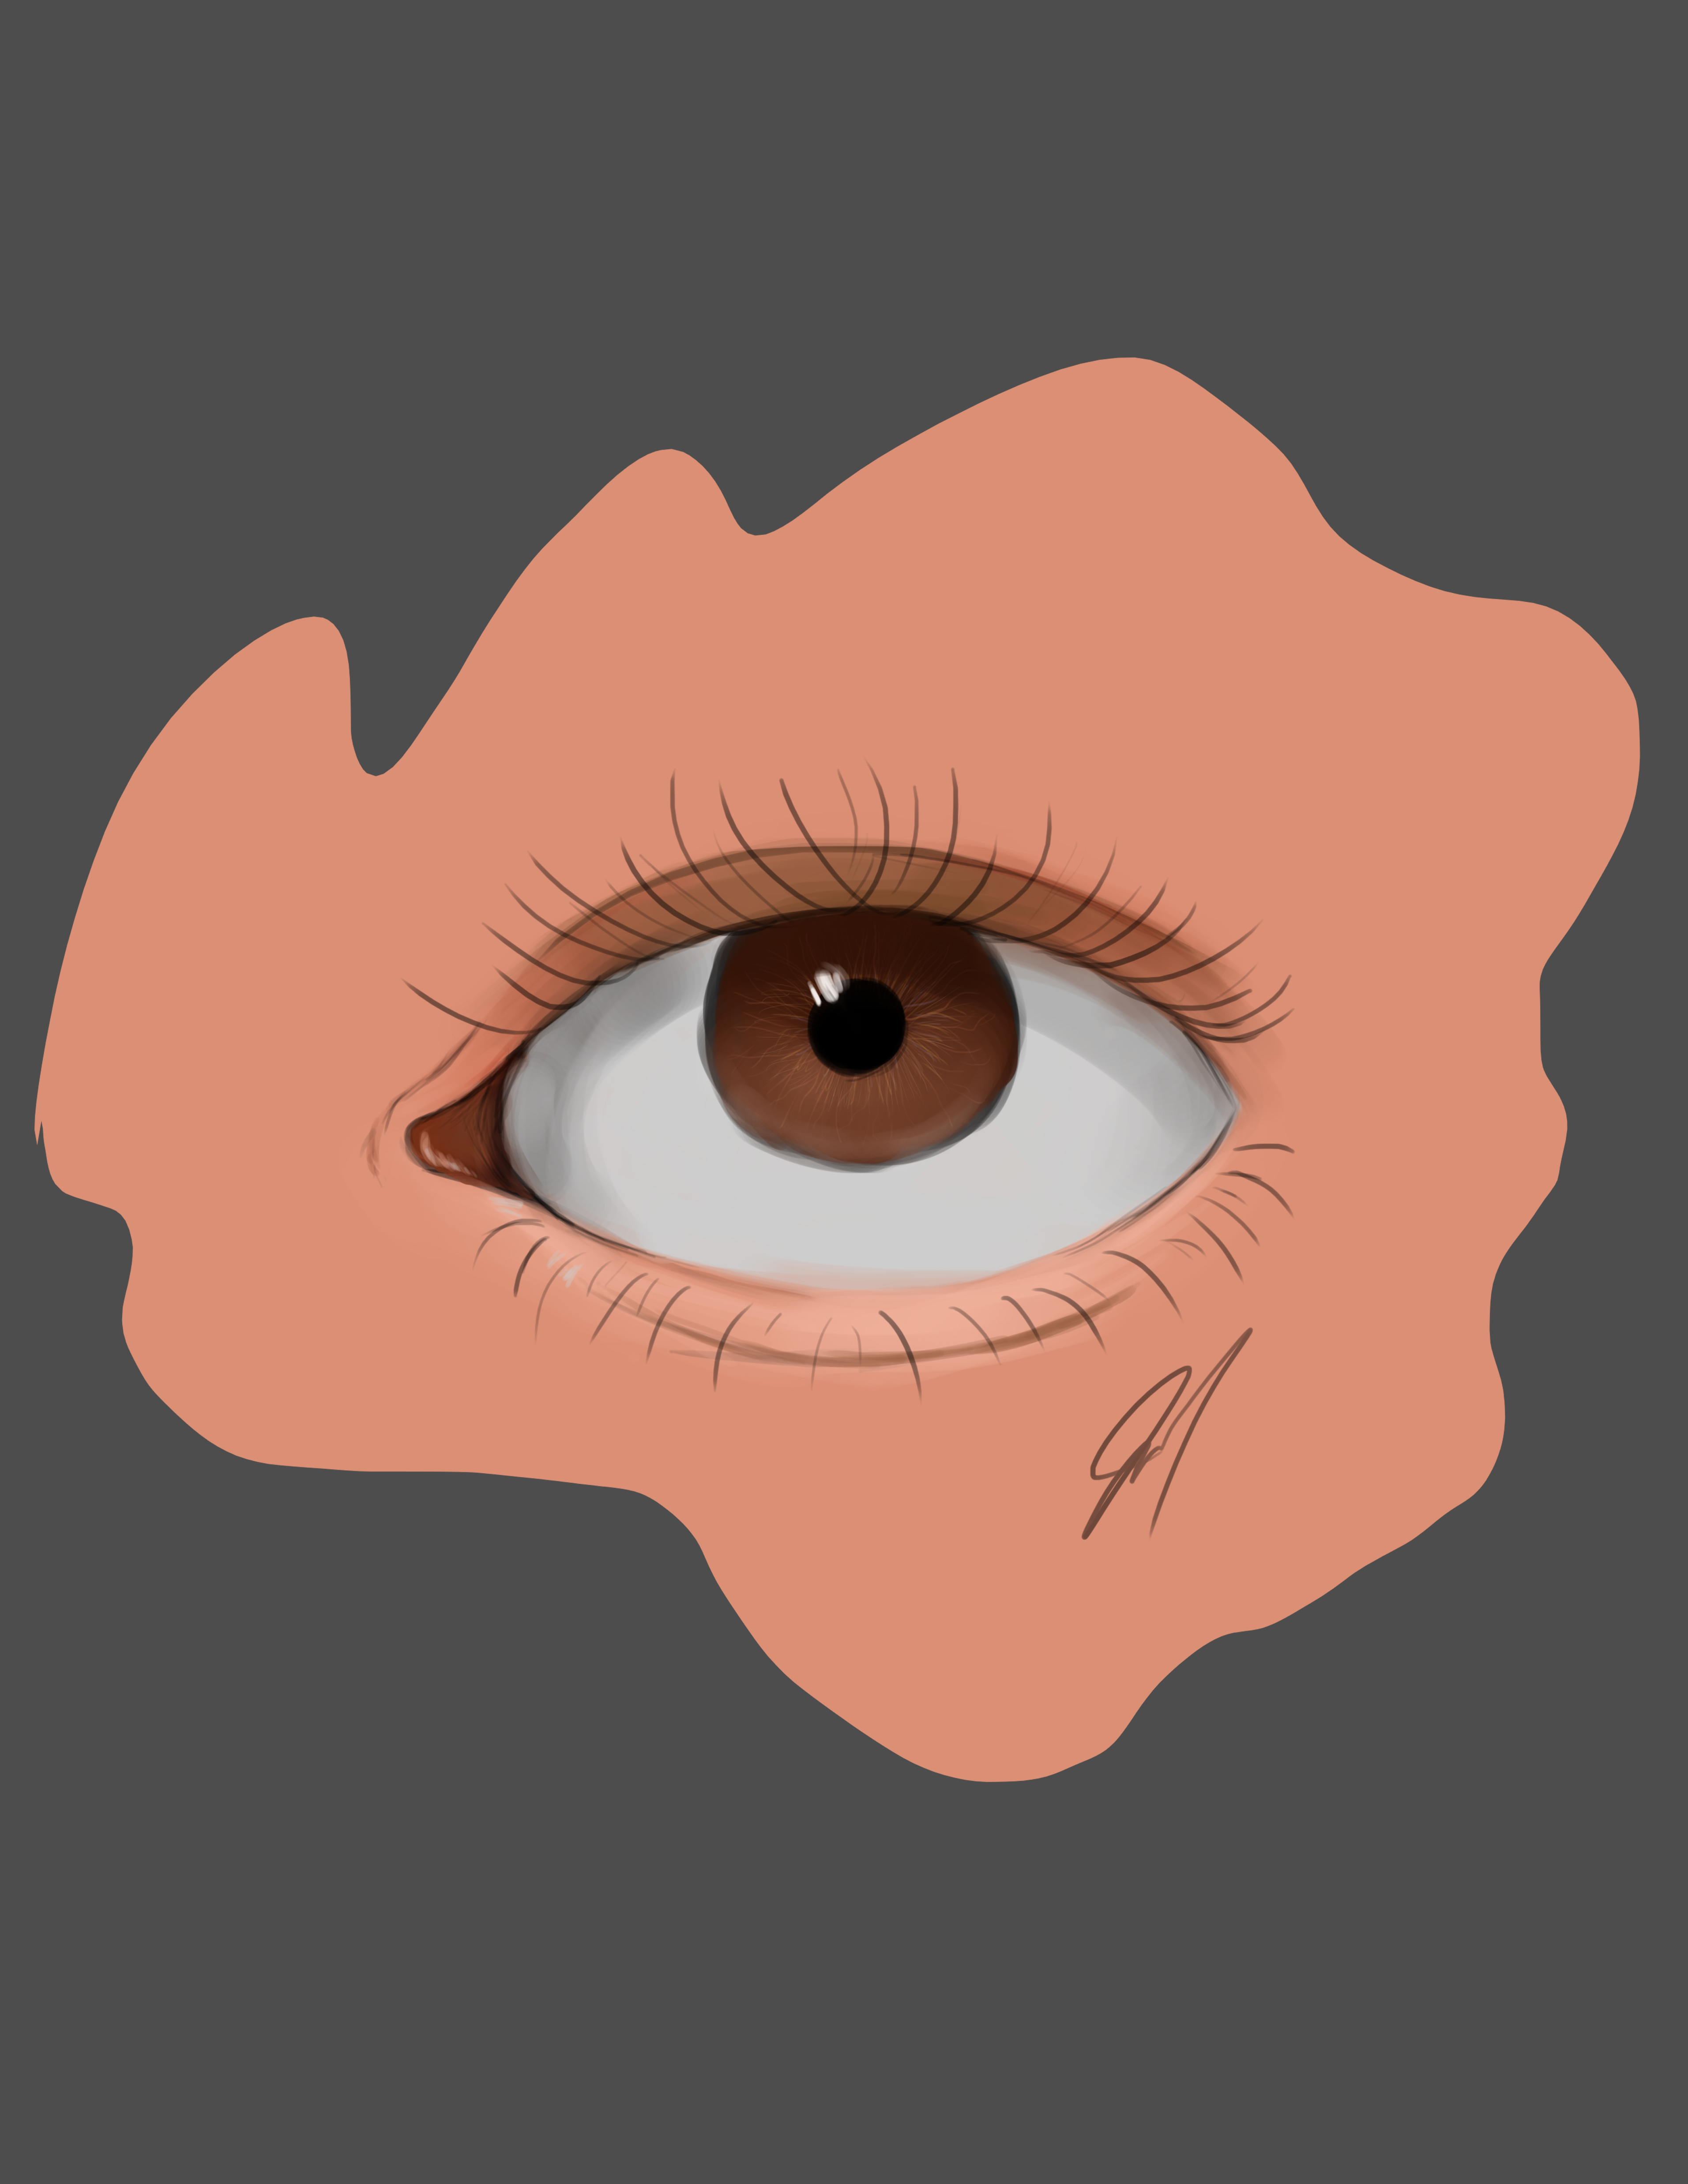 first successful painting in photoshop :D